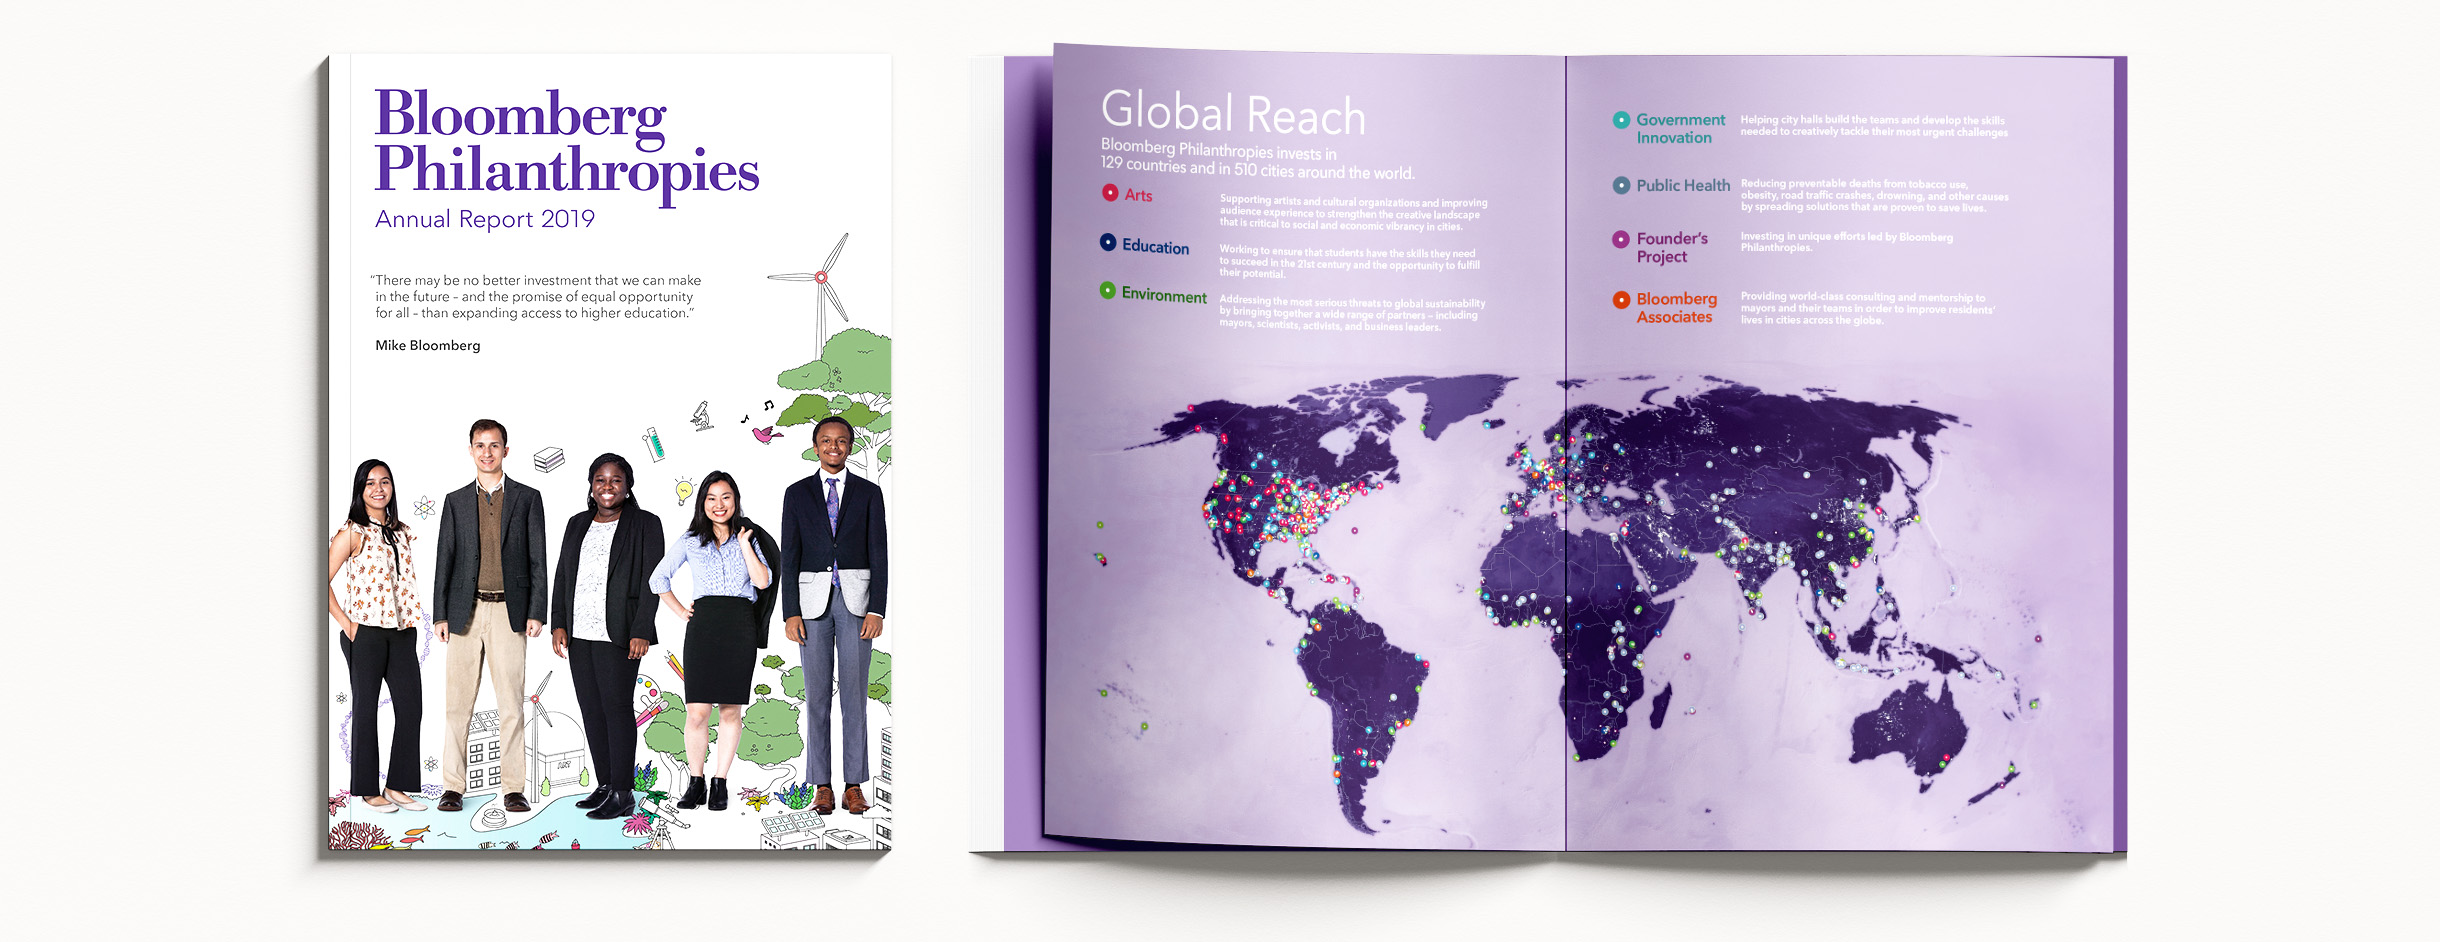 Bloomberg Philanthropies Annual Report Program MAp